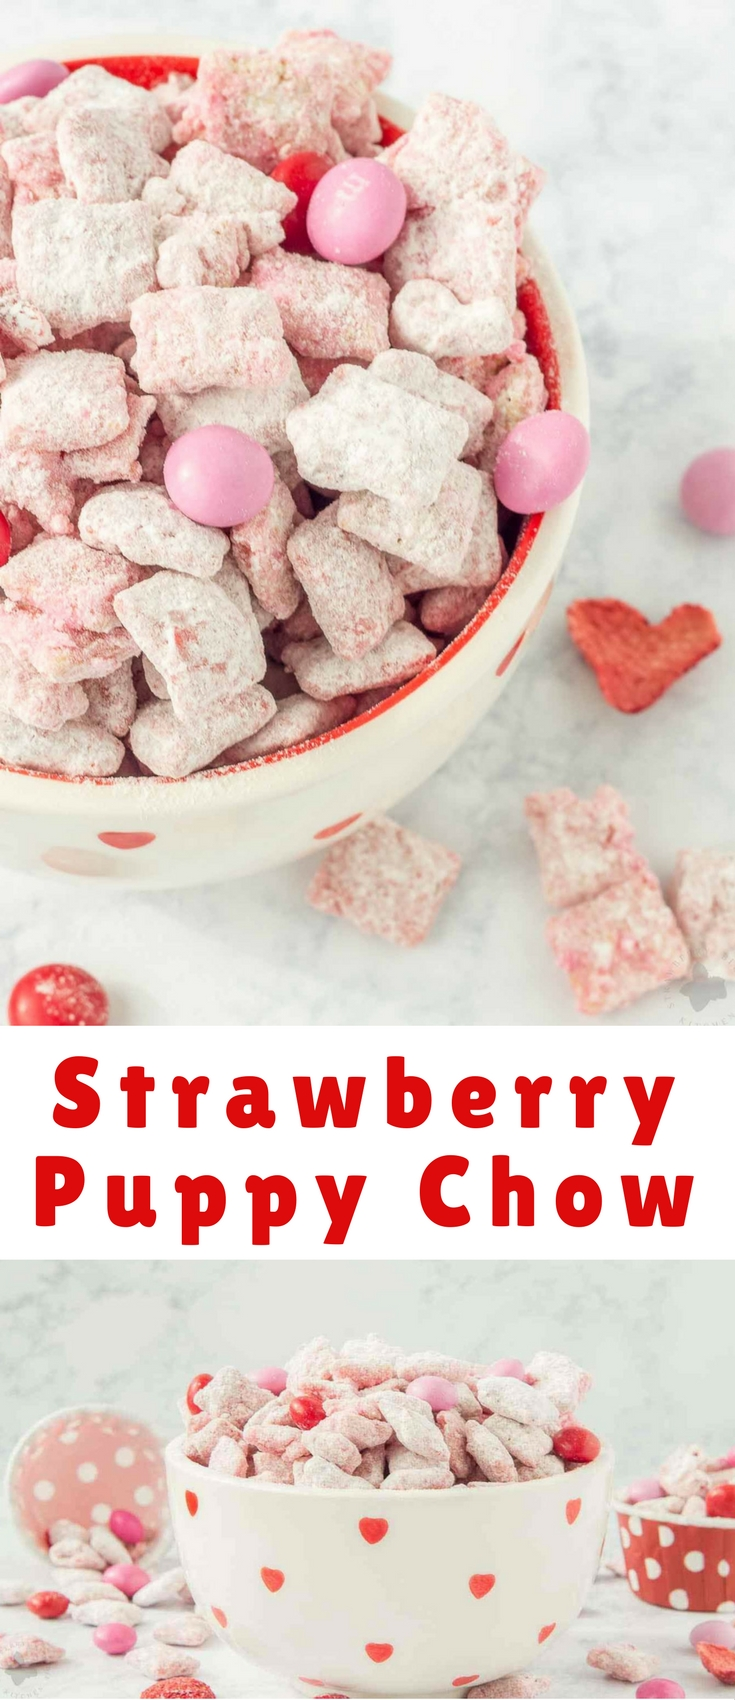 Strawberry Puppy Chow is deliciously sweet, crunchy and highly addictive. A tasty and sweet snack your sweetheart is sure to love!